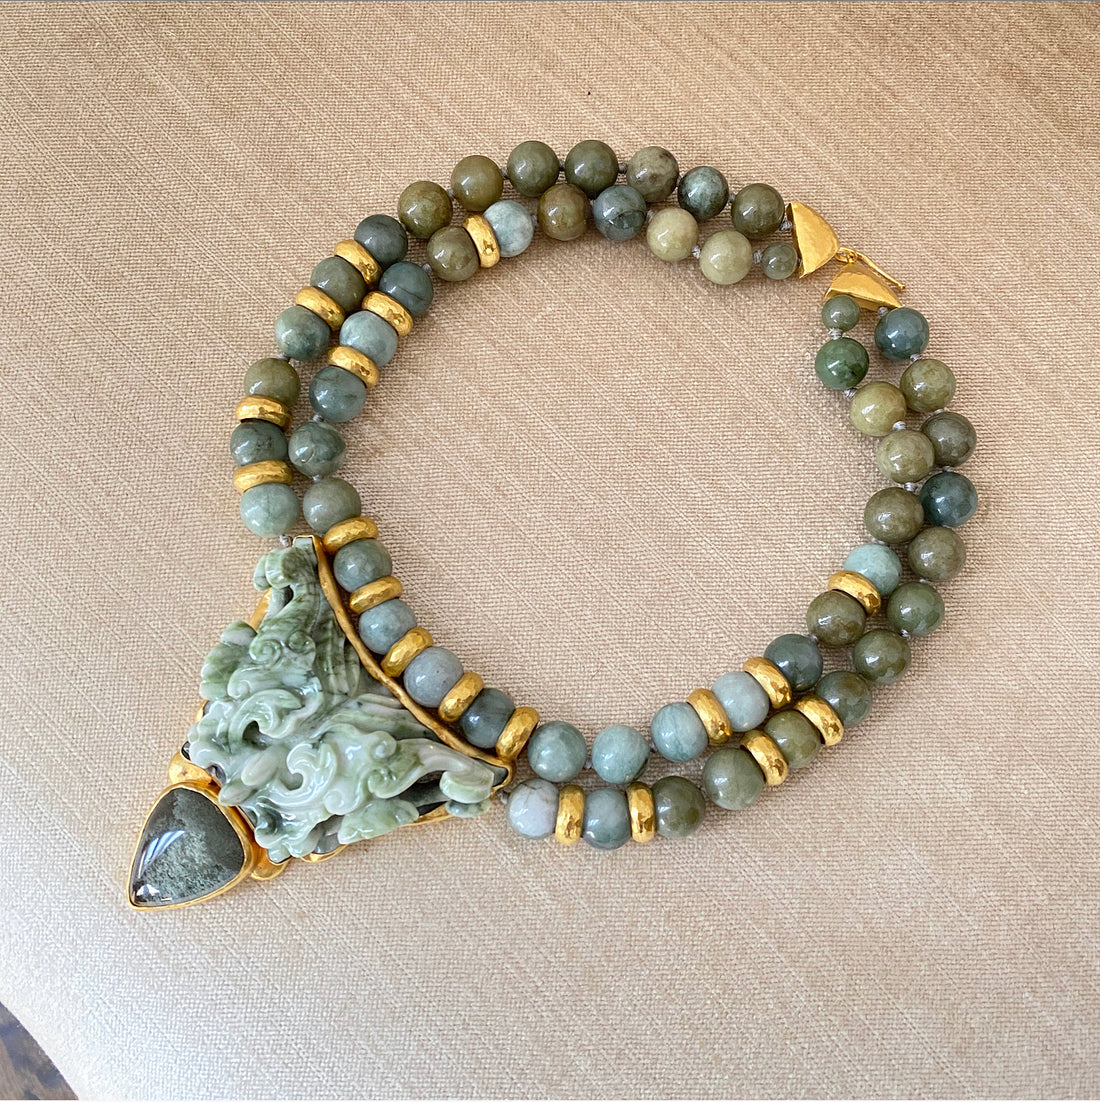 Eileen Coyne 22k Gold and Carved Jade Bead Pendant Necklace